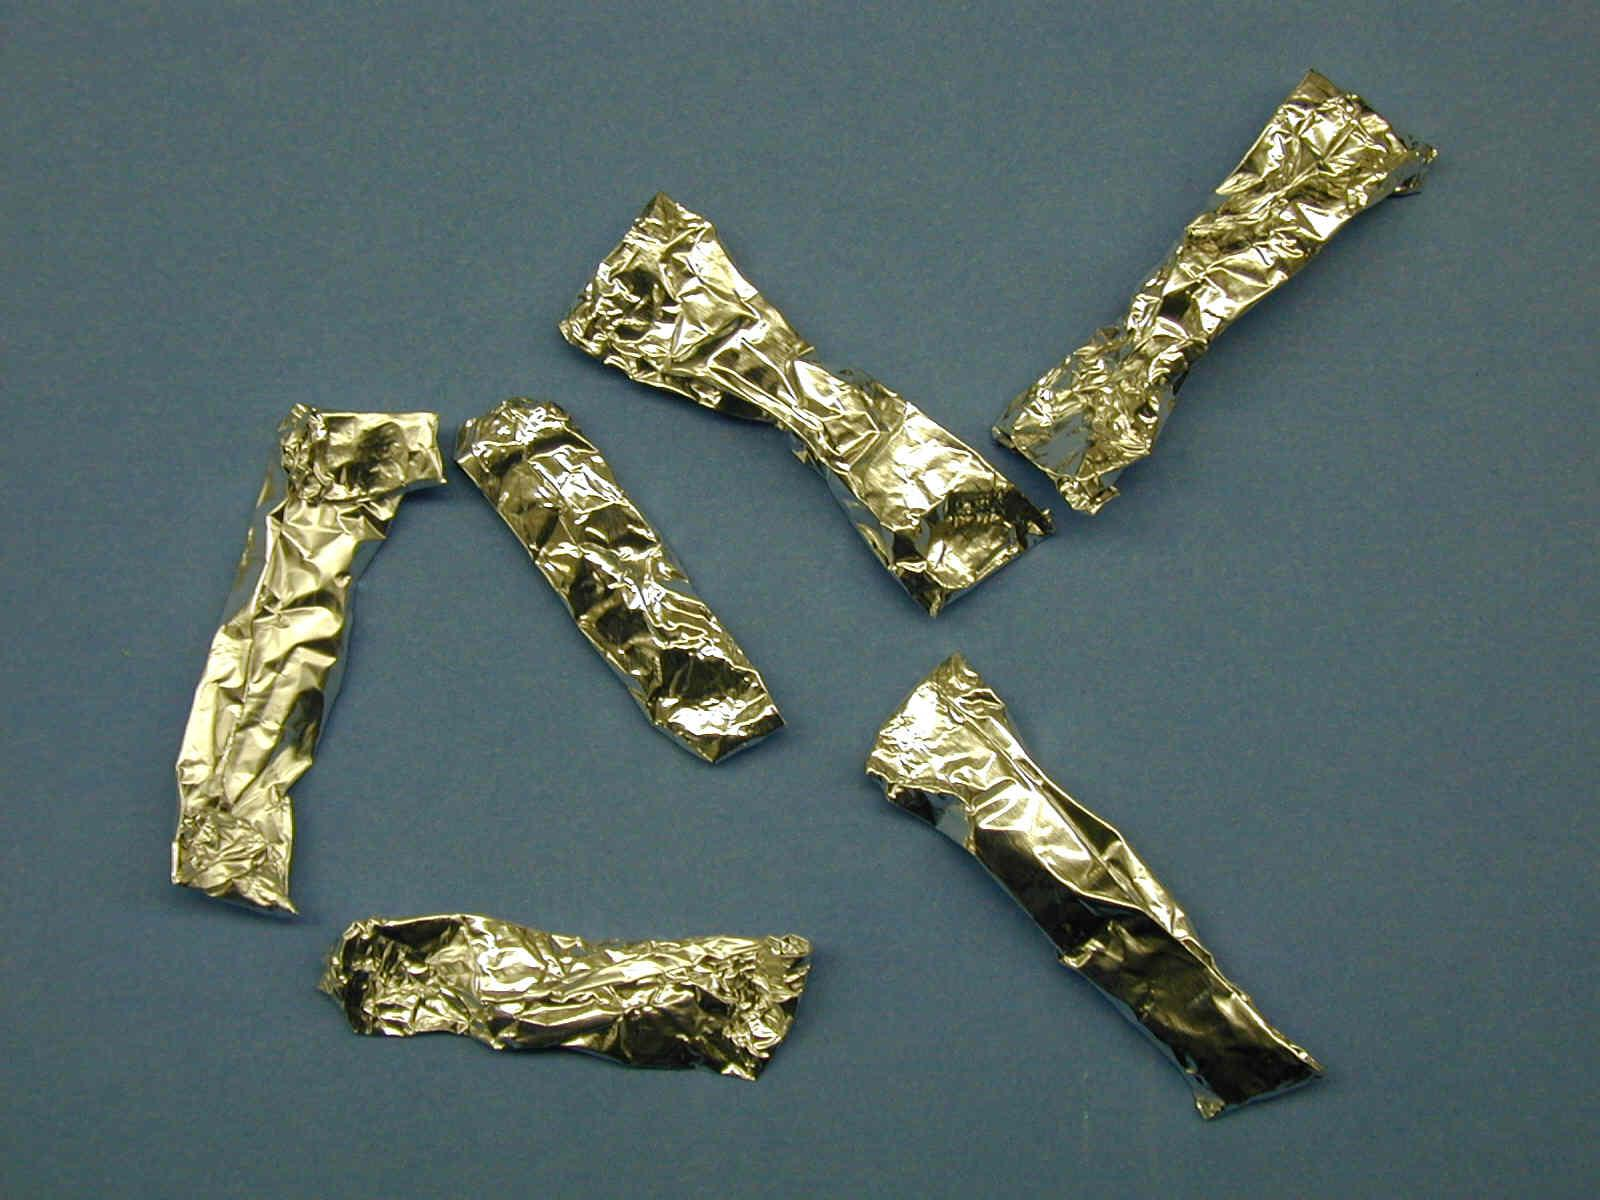 PCP foil wrappers